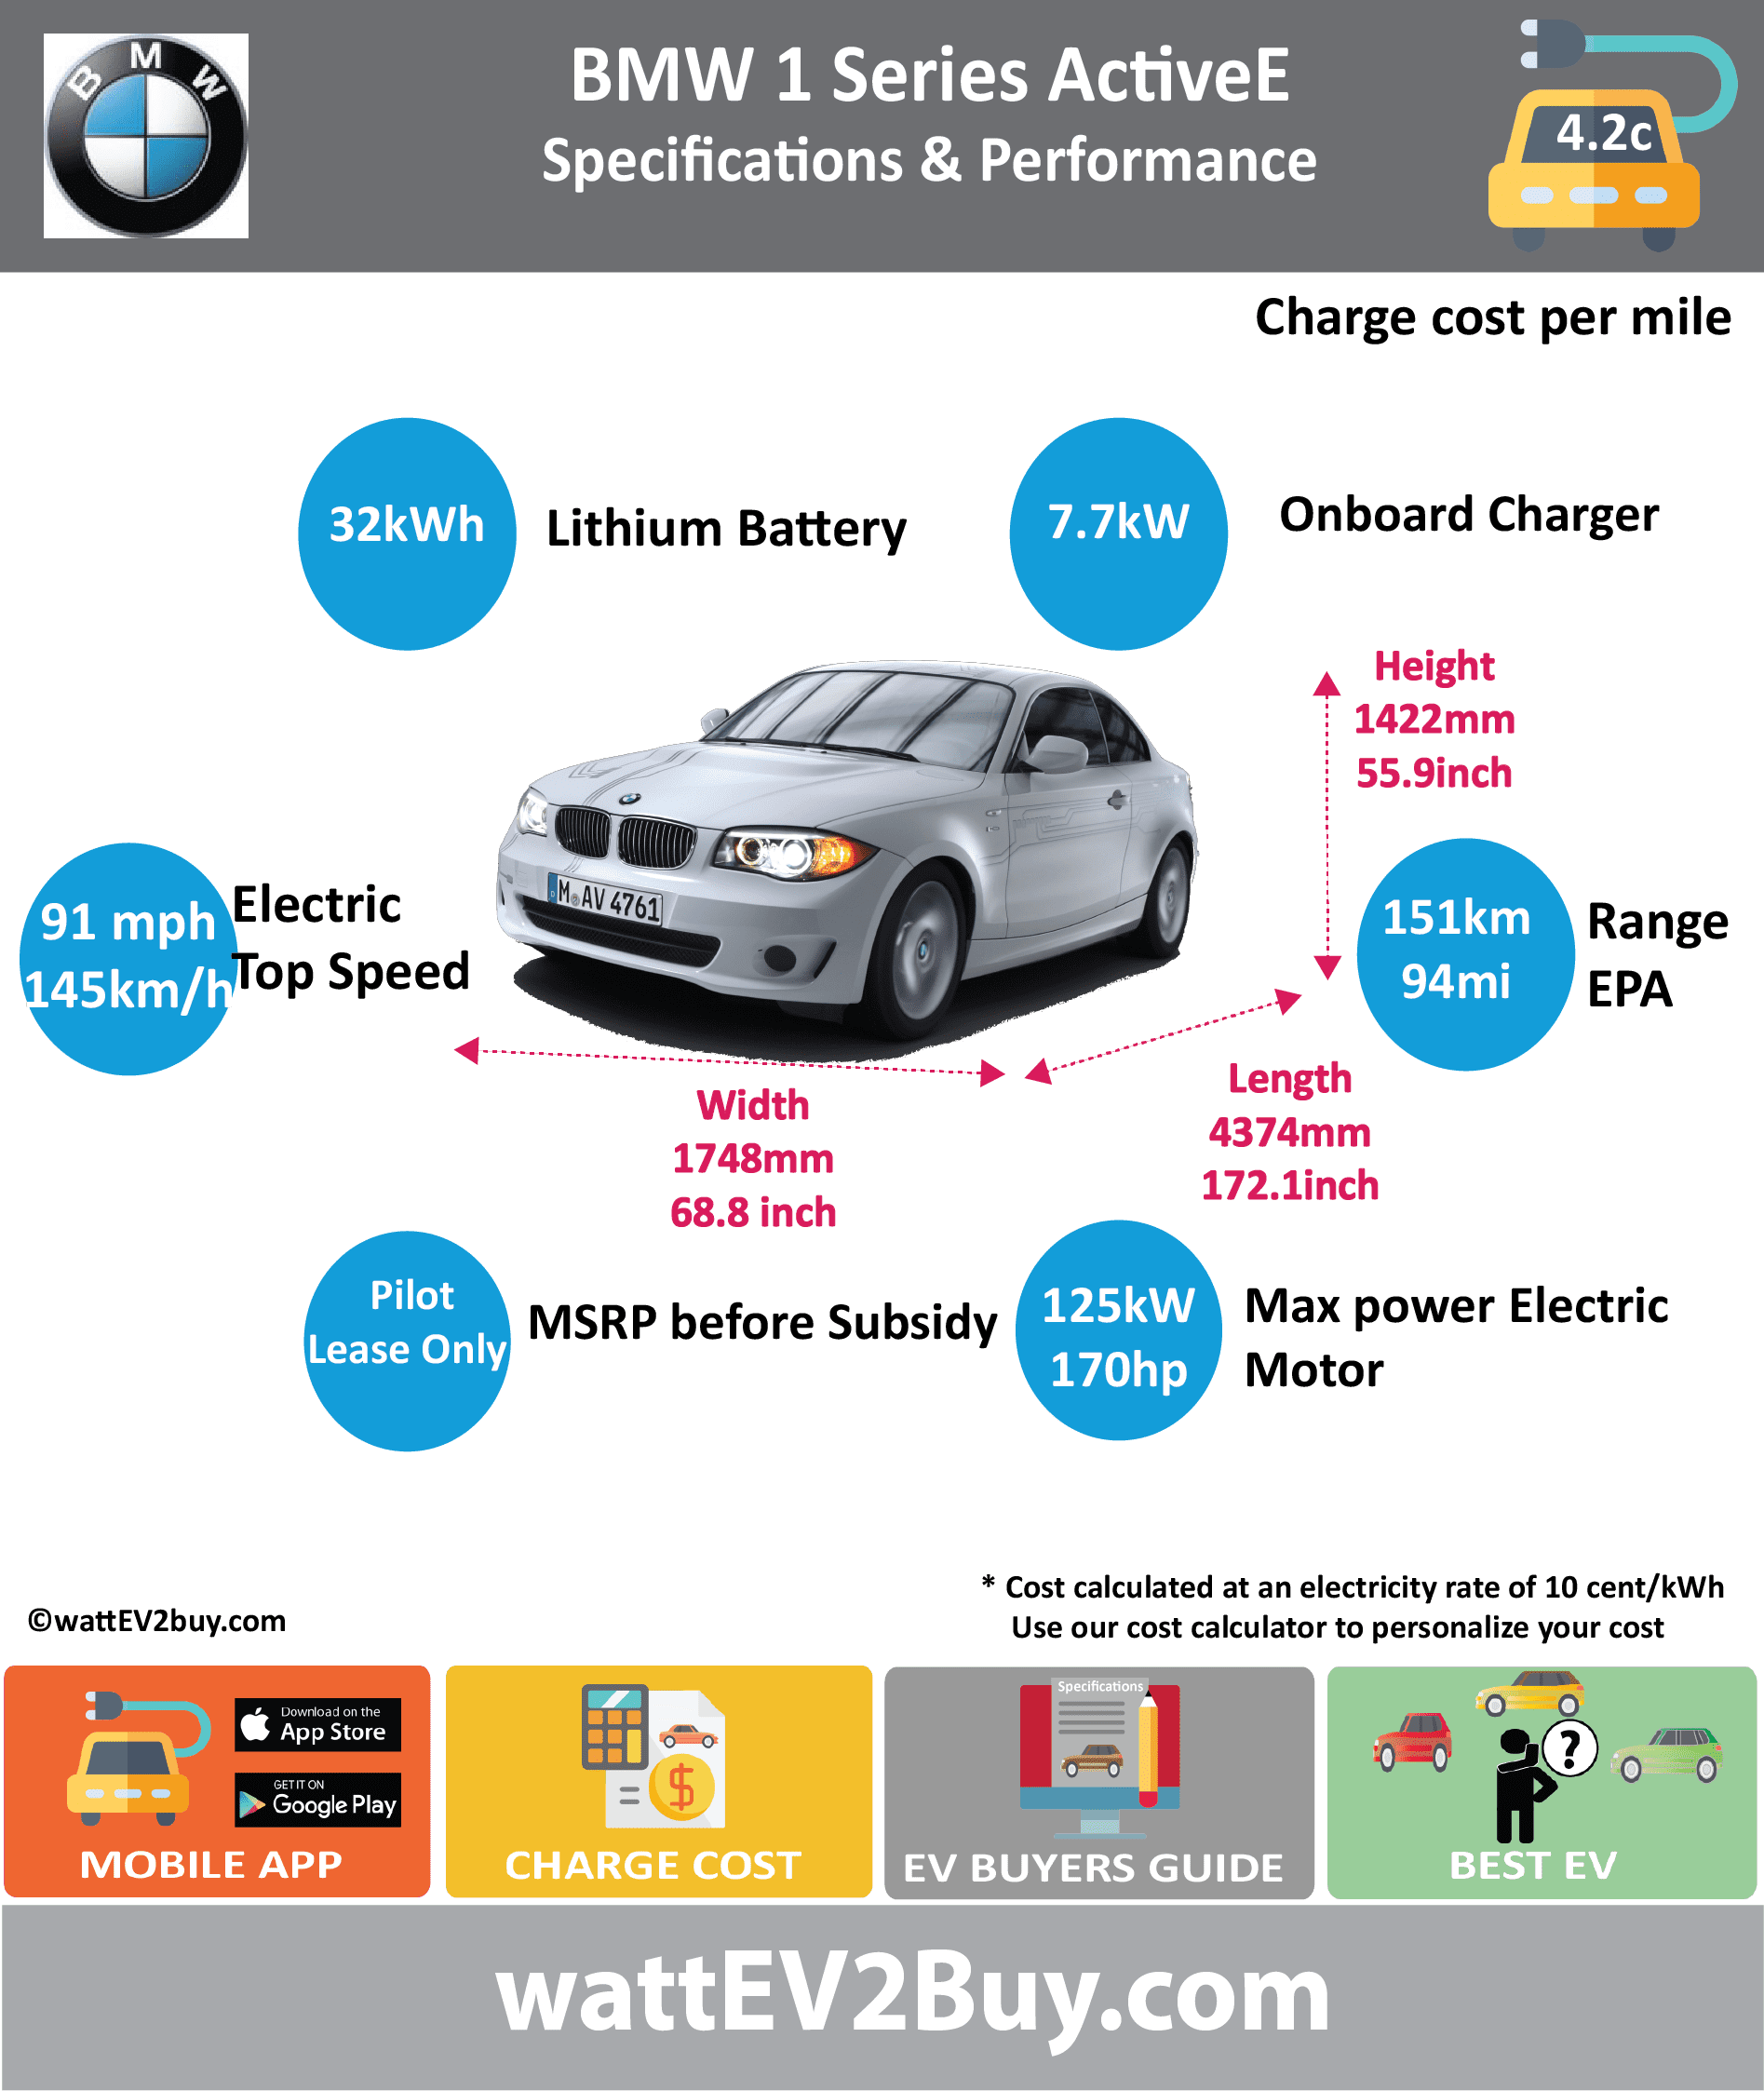 BMW 1 series Active E Specs wattev2Buy.com 2011 Battery Chemistry Battery Capacity kWh 32 Voltage V Amps Ah Cells Modules Cooling Liquid Cycles Depth of Discharge (DOD) Energy Density Wh/kg Battery Manufacturer Battery Warranty - years Battery Electric Range - EPA Mi 91.0 Battery Electric Range - EPA km 151 Electric Top Speed - mph 90.6 Electric Top Speed - km/h 145 Acceleration 0 - 60mph sec 8.5 Onboard Charger kW 7.7 LV 1 Charge kW 1.3 LV 1 Charge Time (Hours) LV 2 Charge kW 6.4 LV 2 Charge Time (Hours) LV 3 CCS/Combo kW LV 3 Charge Time (min to 80%) Charge Connector MPGe Combined - miles MPGe Combined - km MPGe City - miles MPGe City - km MPGe Highway - miles MPGe Highway - km Max Power - hp 170 Max Power - kW 125 Max Torque - lb.ft Max Torque - N.m Electric Motor Rear Electric Motor Front Electric Motor Output Transmission Energy Consumption kWh/100km 33 MSRP (before incentives & destination) Vehicle Doors Seating Dimensions GVWR (kg) Curb Weight (kg) 1800 Payload Capacity (lbs) Towing Capacity (lbs) Ground Clearance (mm) Lenght (mm) 4374 Width (mm) 1748 Height (mm) 1422 Wheelbase (mm) Lenght (inc) 172.1 Width (inc) 68.8 Height (inc) 55.9 Wheelbase (inc) 0.0 Other Market Pilot Class Sedan First Delivery Safety Level